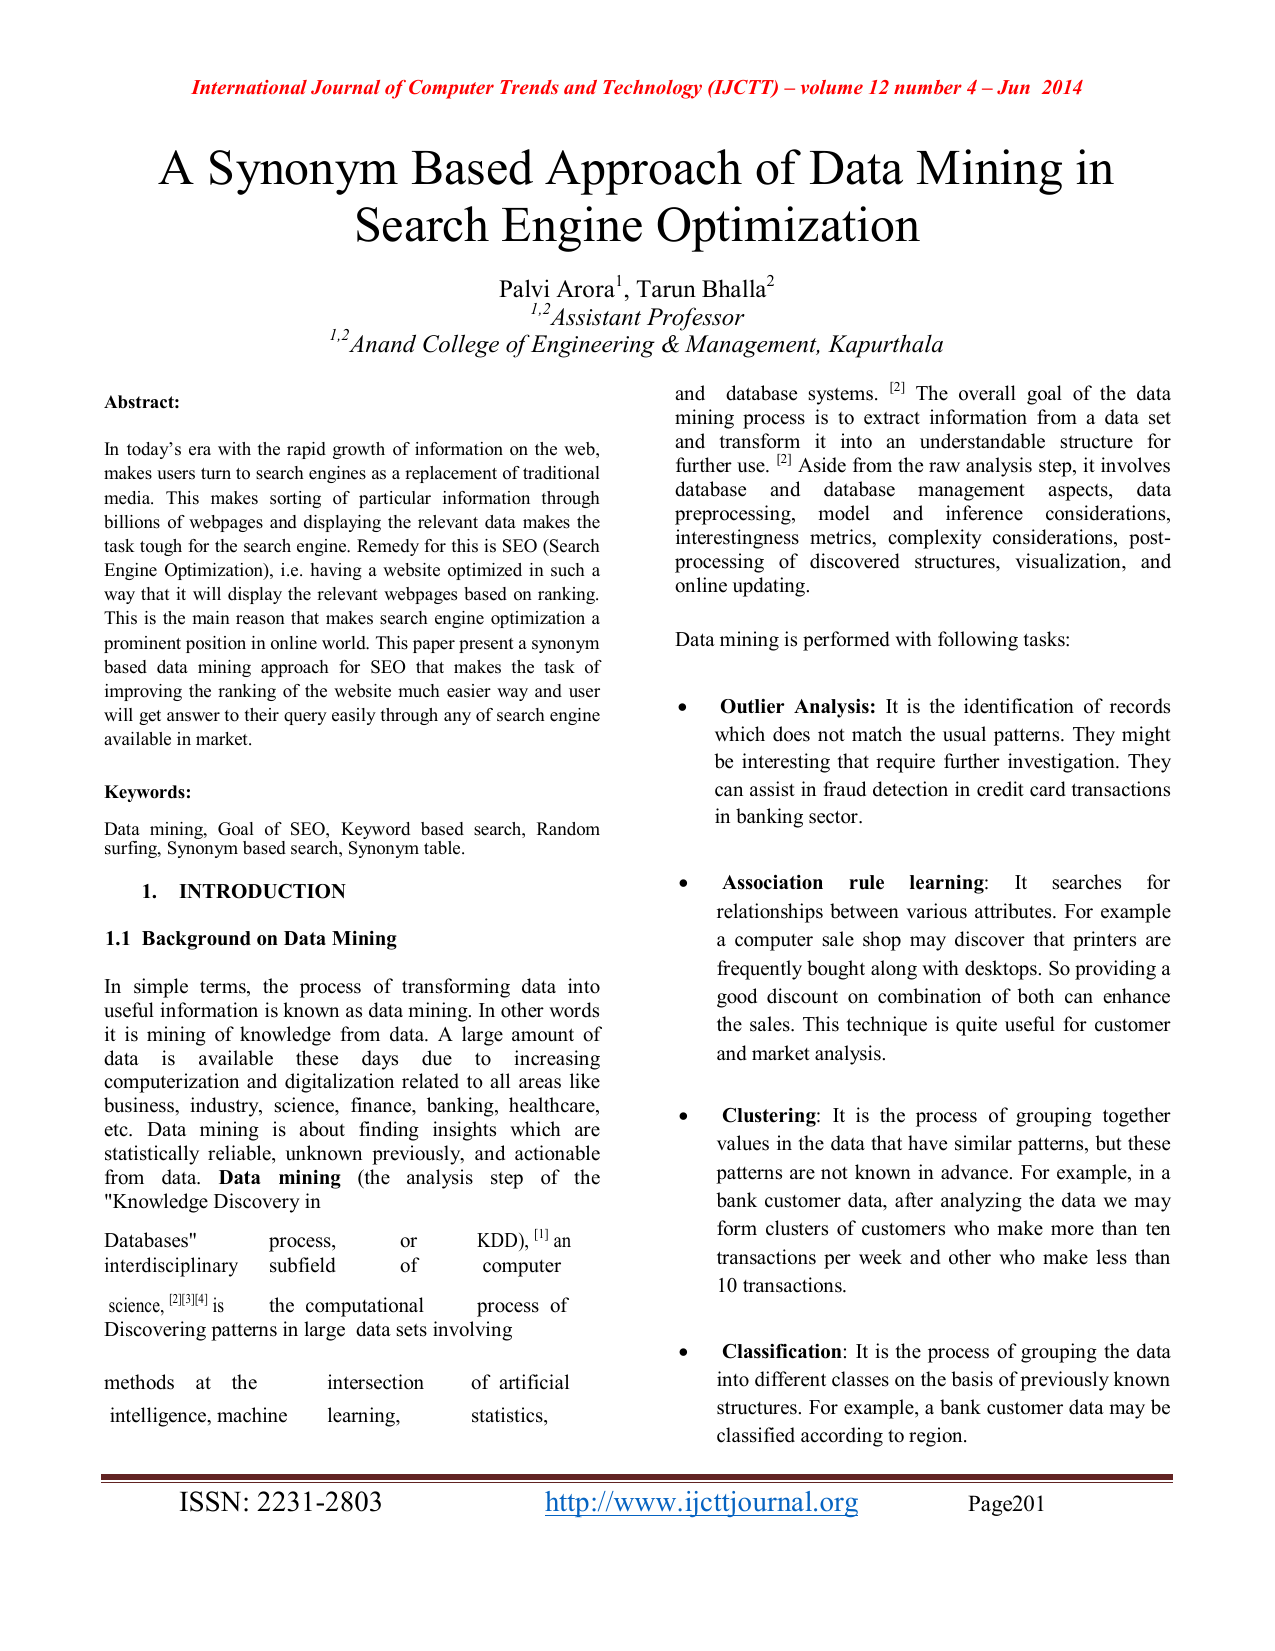 A Synonym Based Approach Of Data Mining In Search